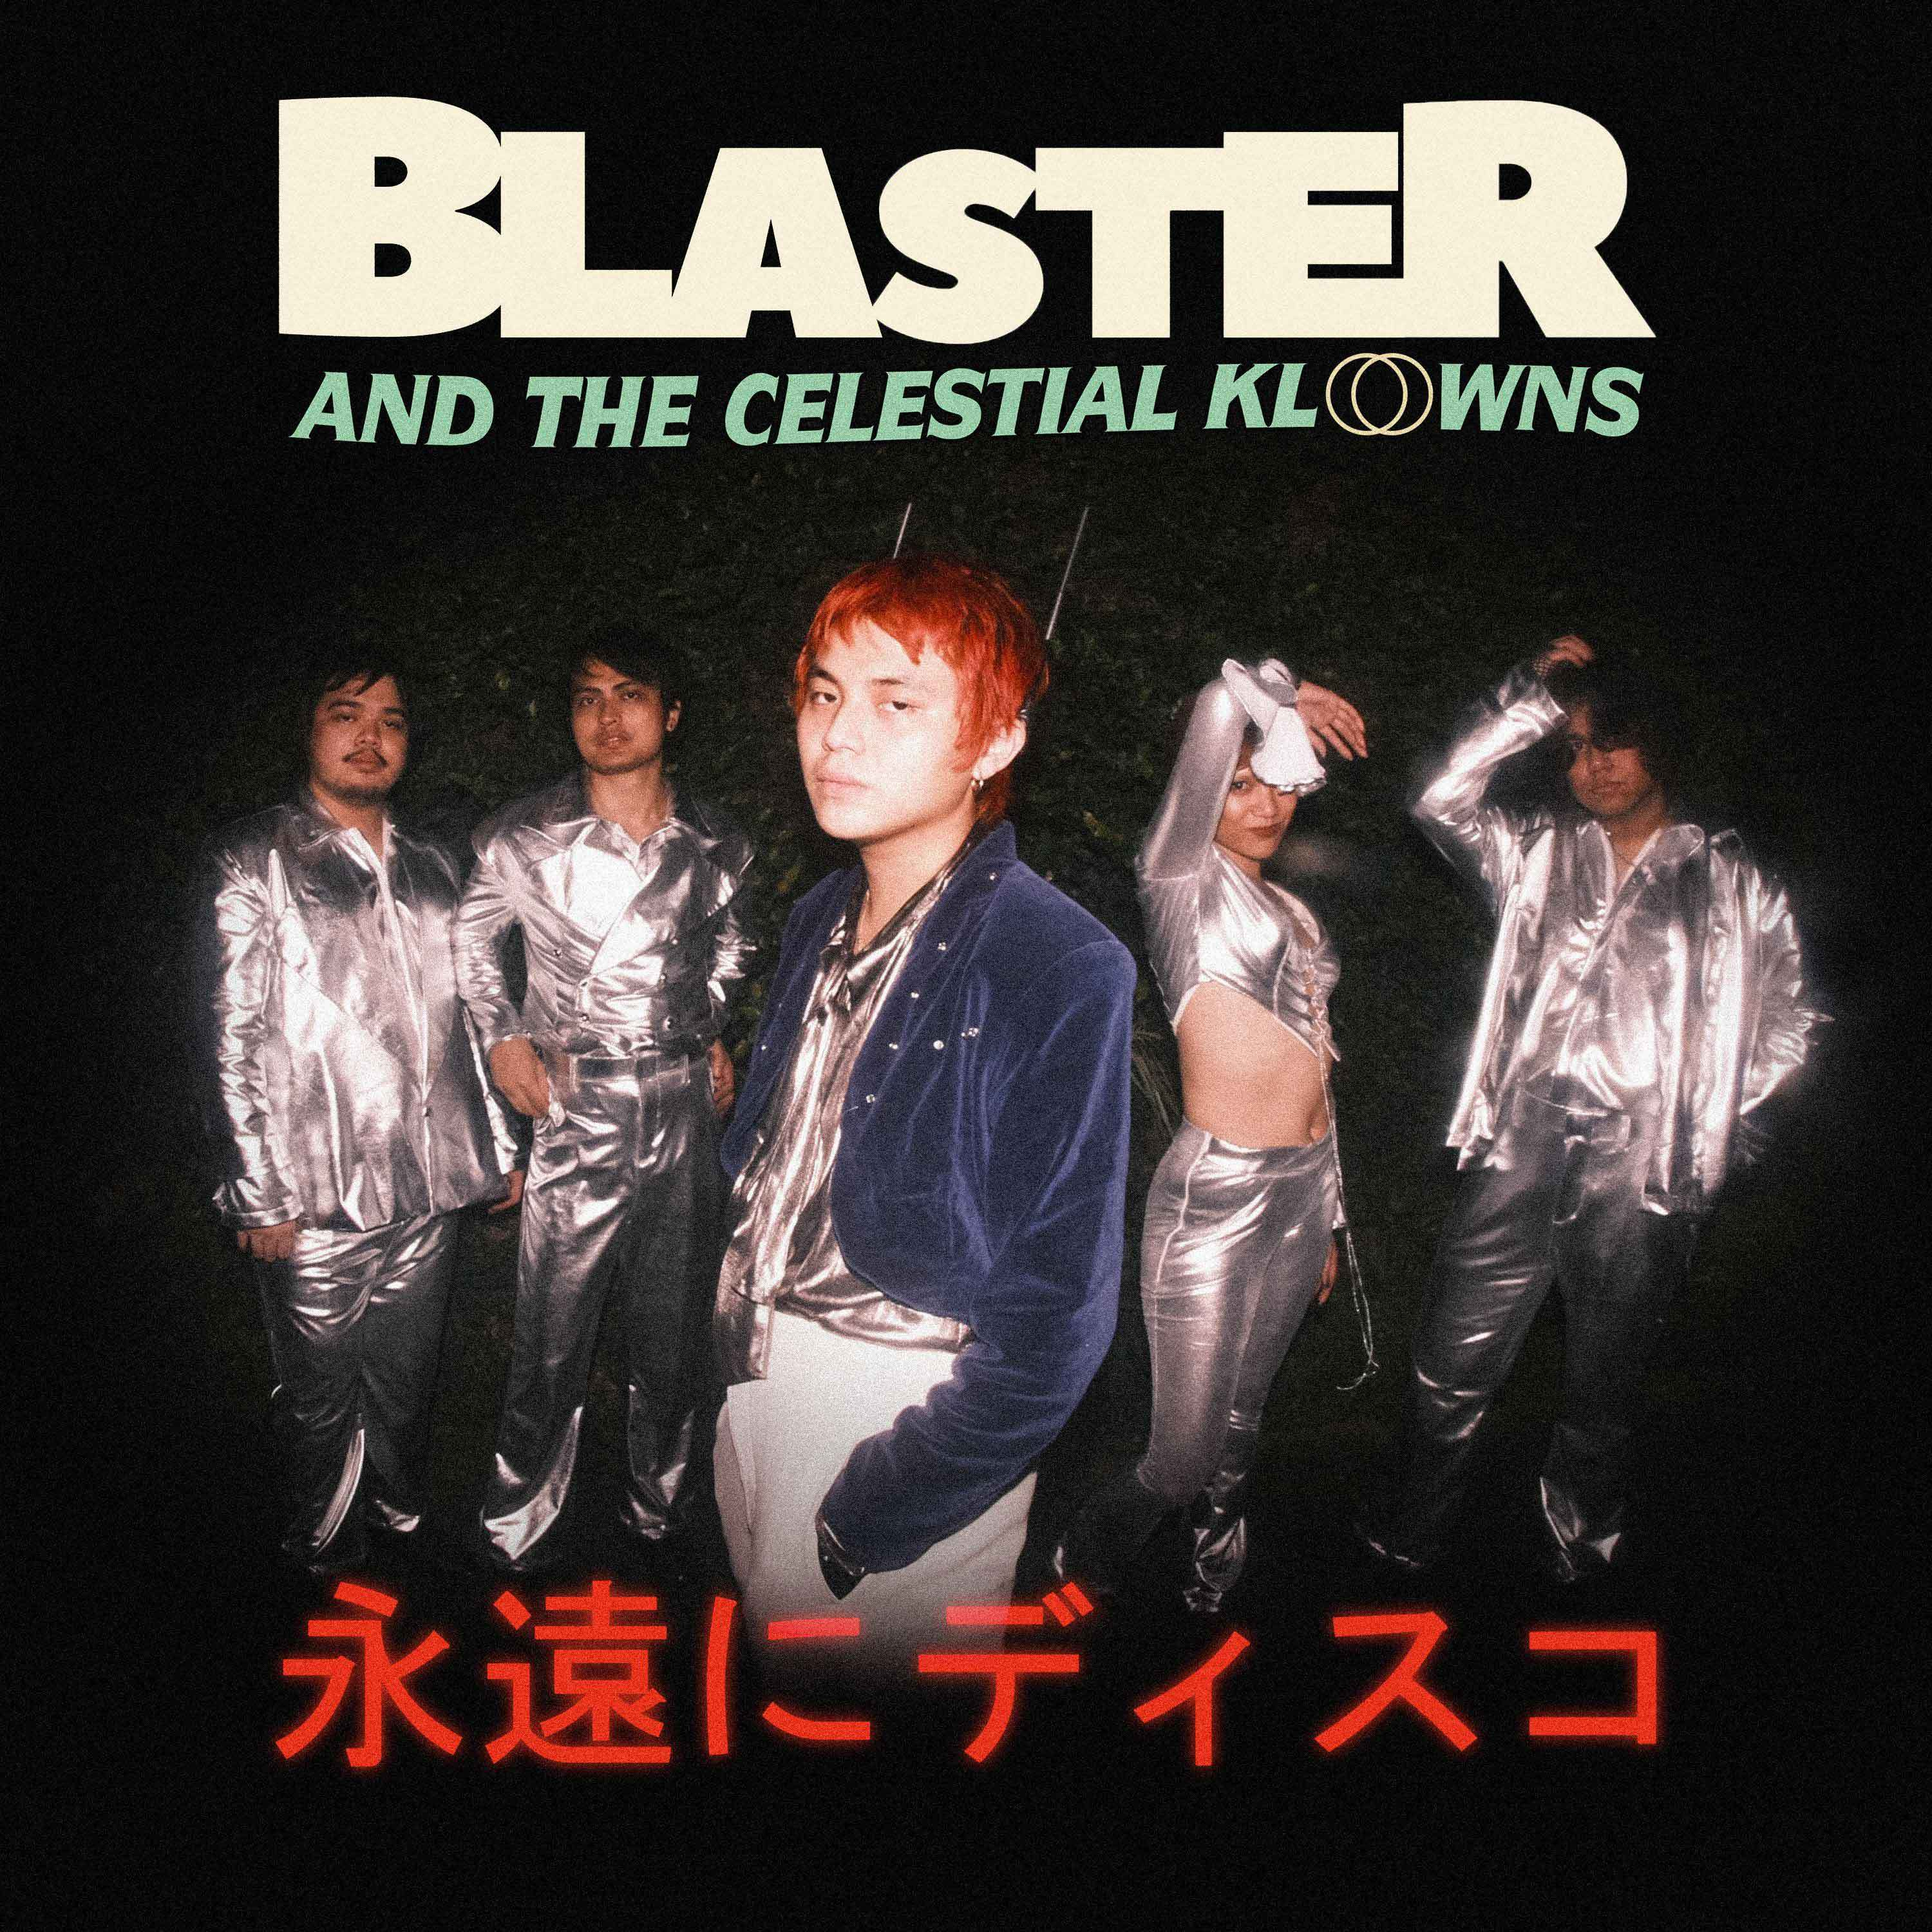 """Blaster Joins Island Records Philippines, Releases Japanese Version Of New Song """"Disko Forever"""""""